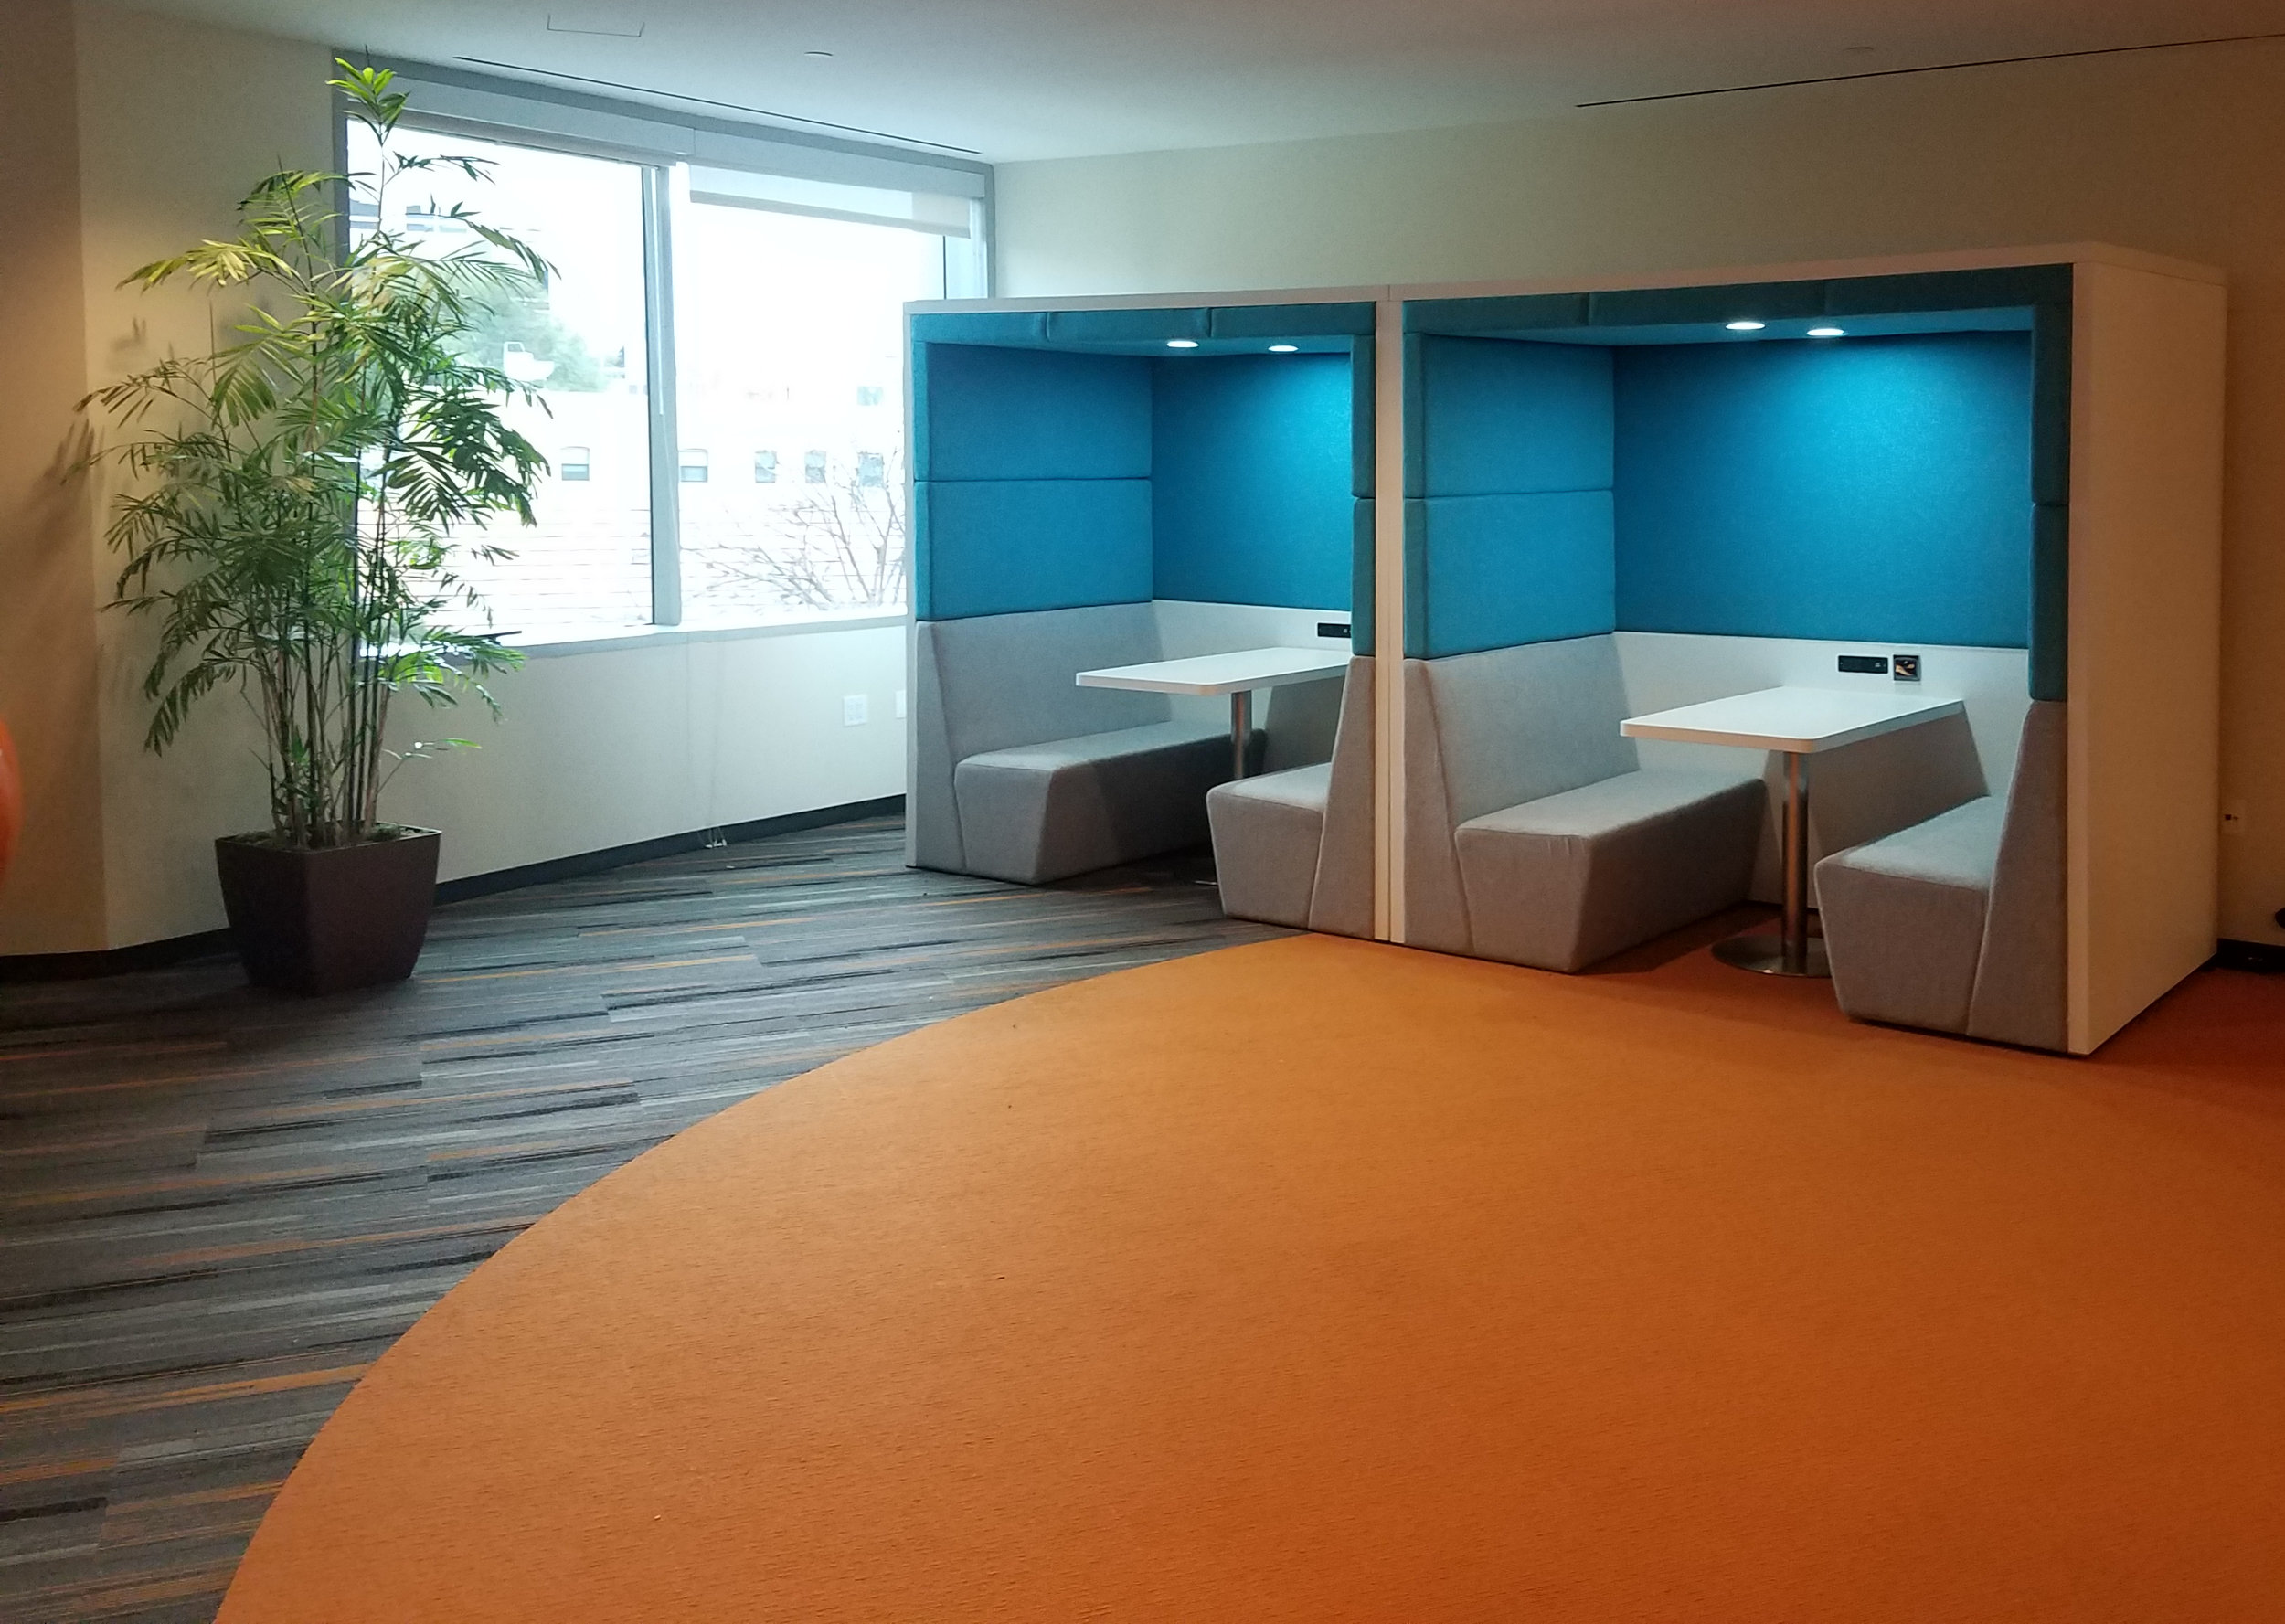 The Hive cafe and office meeting Booth  Meeting pods allow people to have meetings, brainstorming sessions, and private conversations without disturbing the whole office.